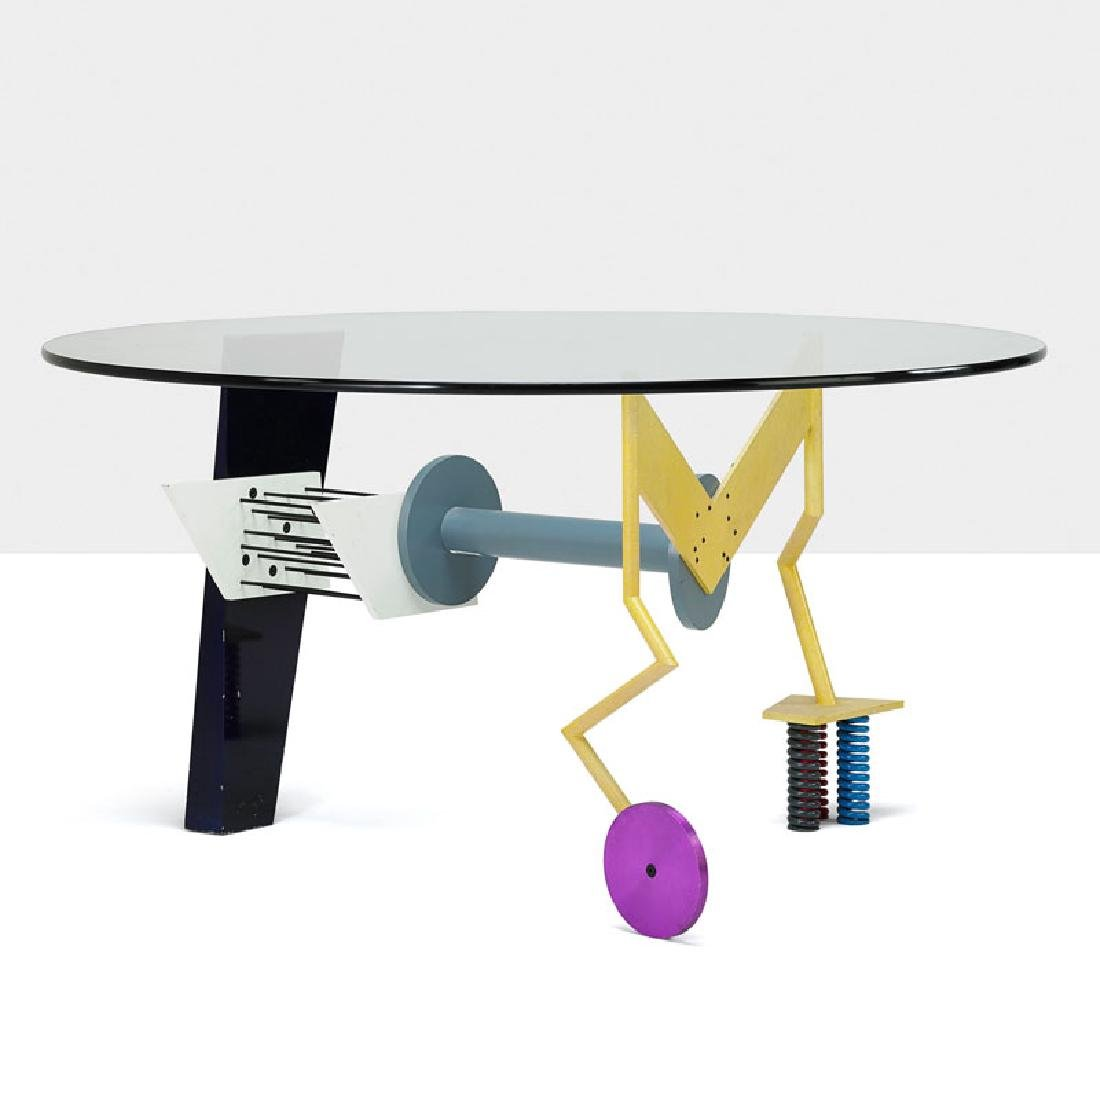 PETER SHIRE; MEMPHIS Dining table